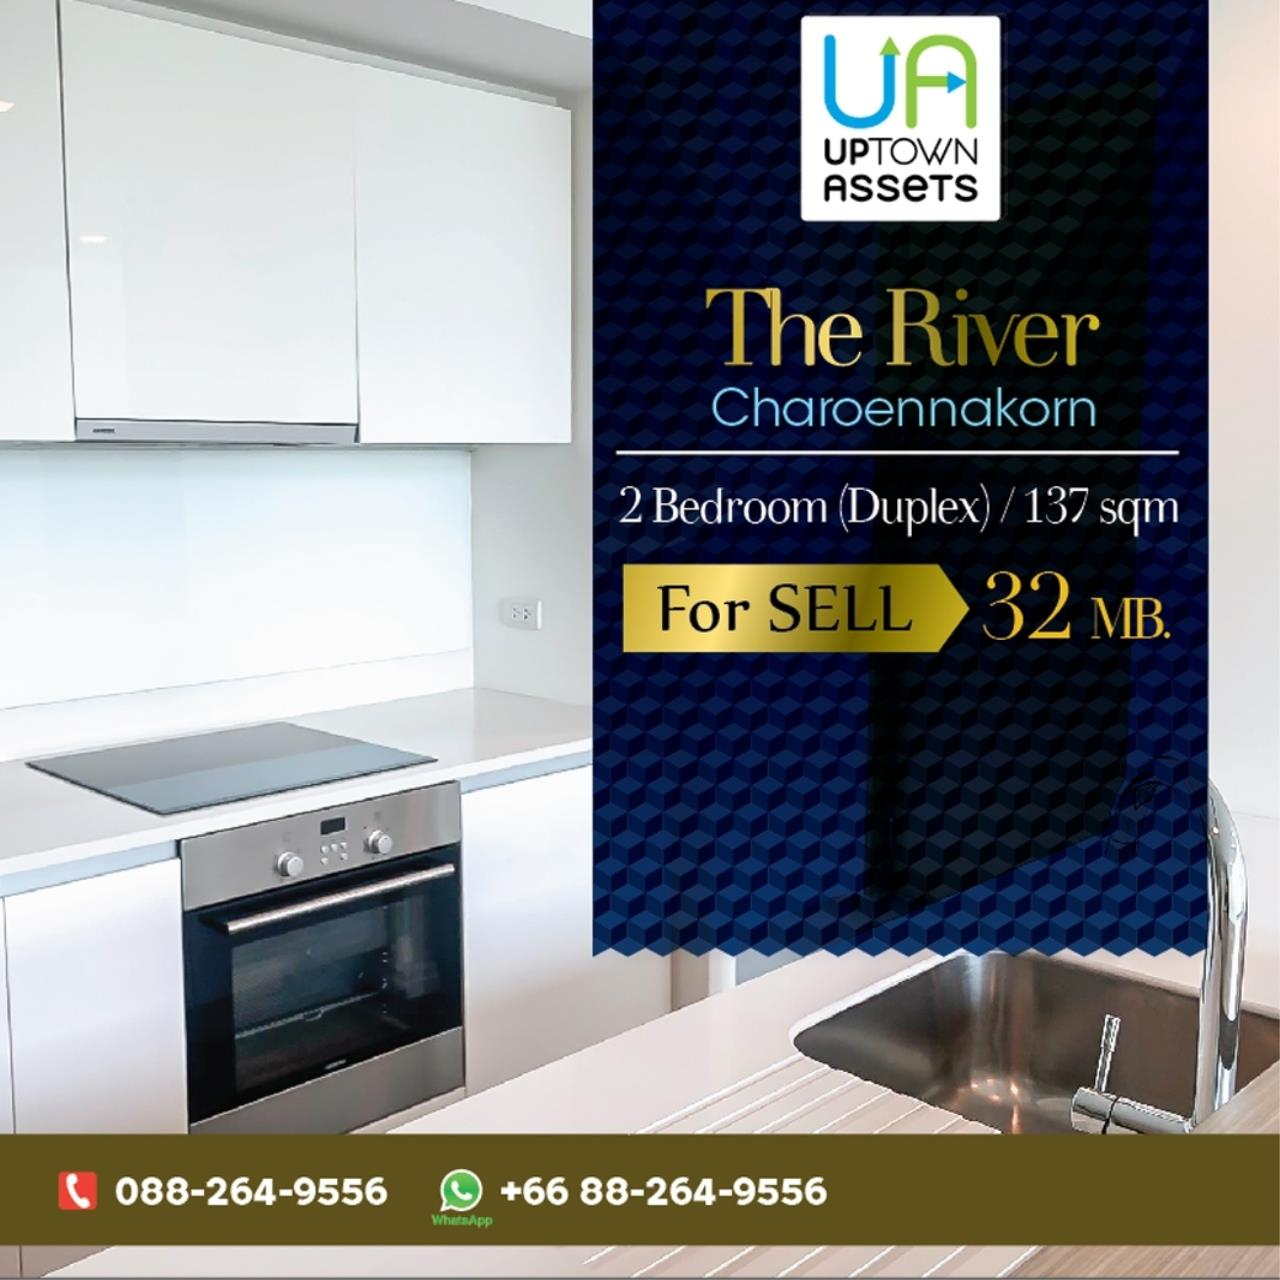 Uptown Assets  Agency's The River  Unit B914 15